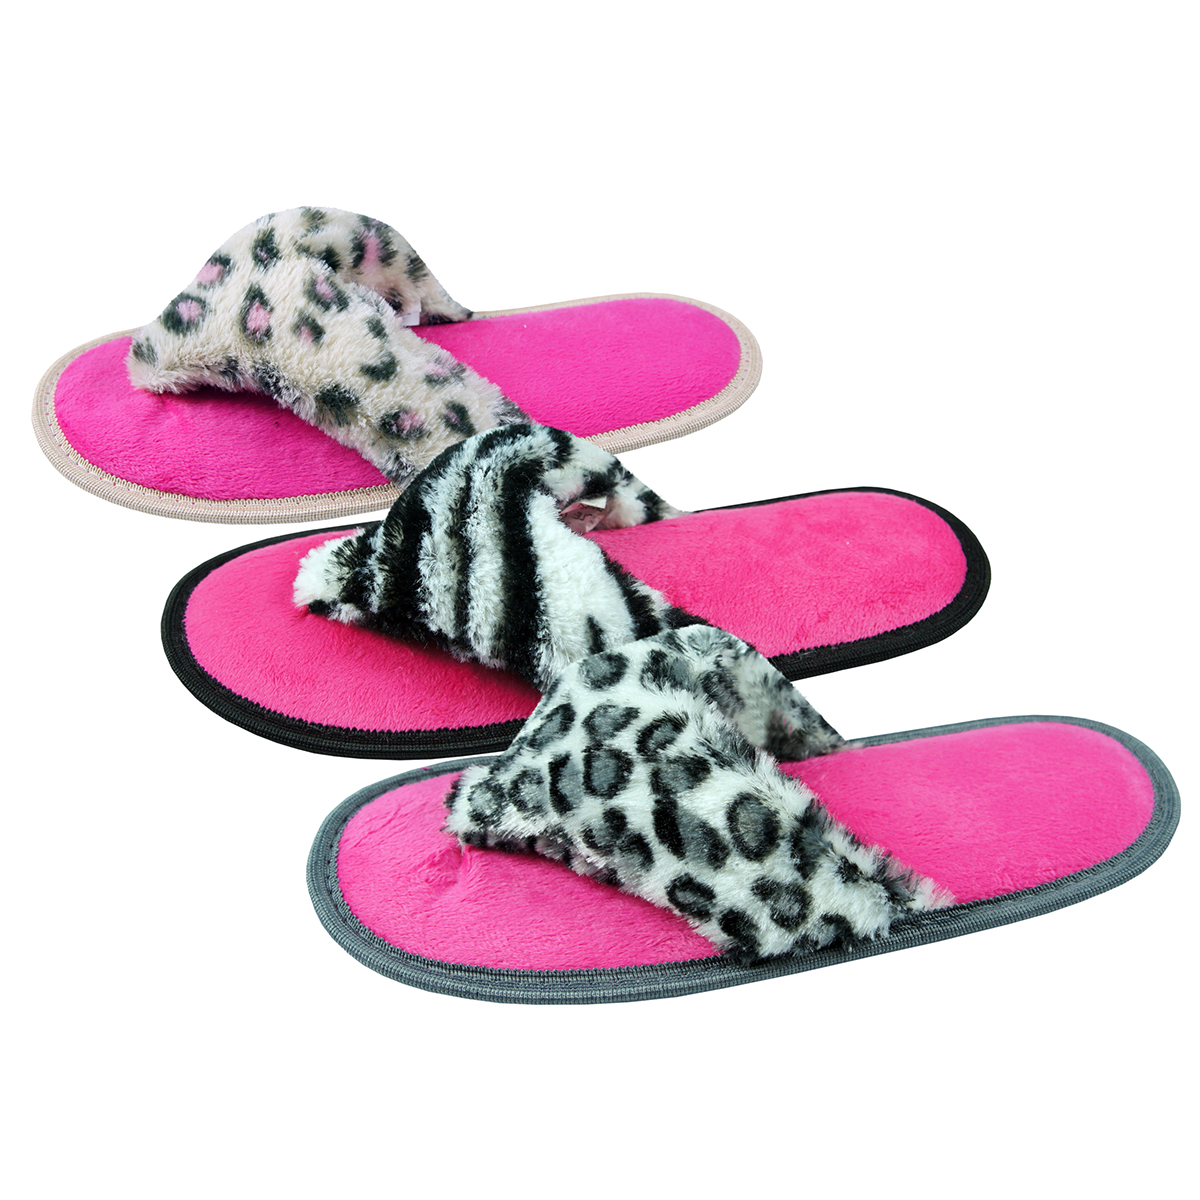 566d93156a67b2 Ladies Womens Animal Print Slippers Flip Flop Textile Faux Fur FOREVER  DREAMING